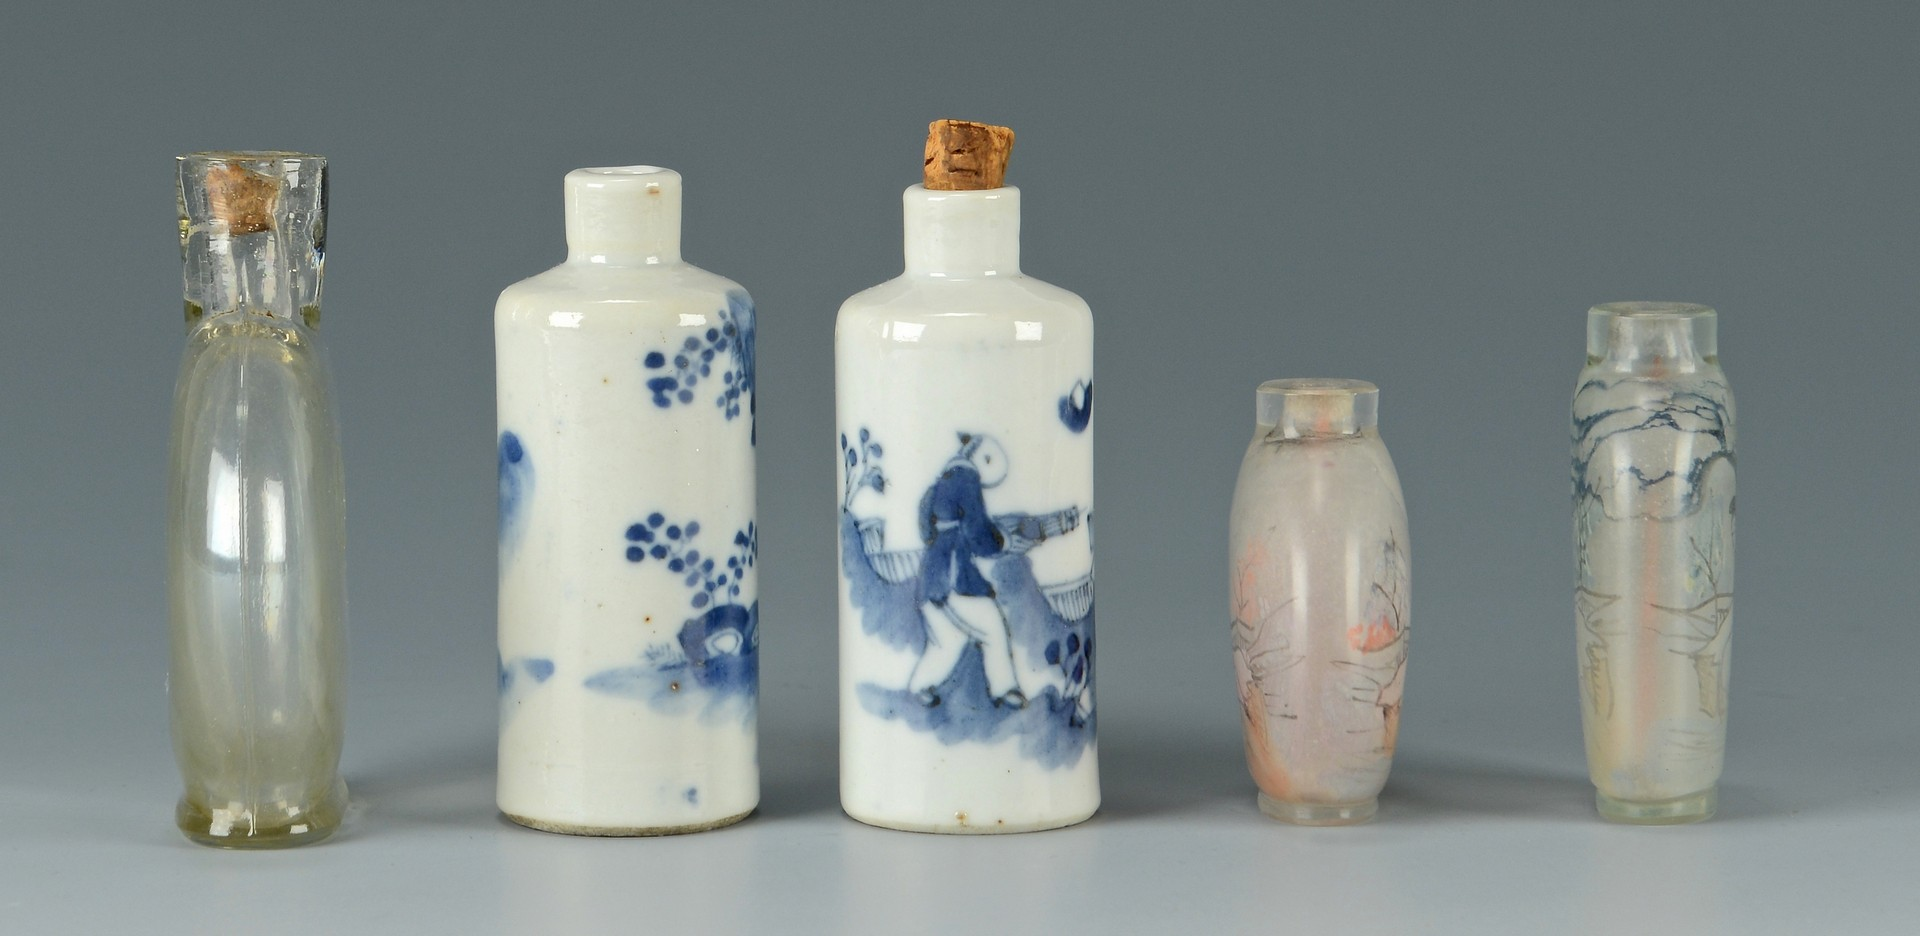 Lot 3594185: 4 Chinese Snuff Bottles + 1 other